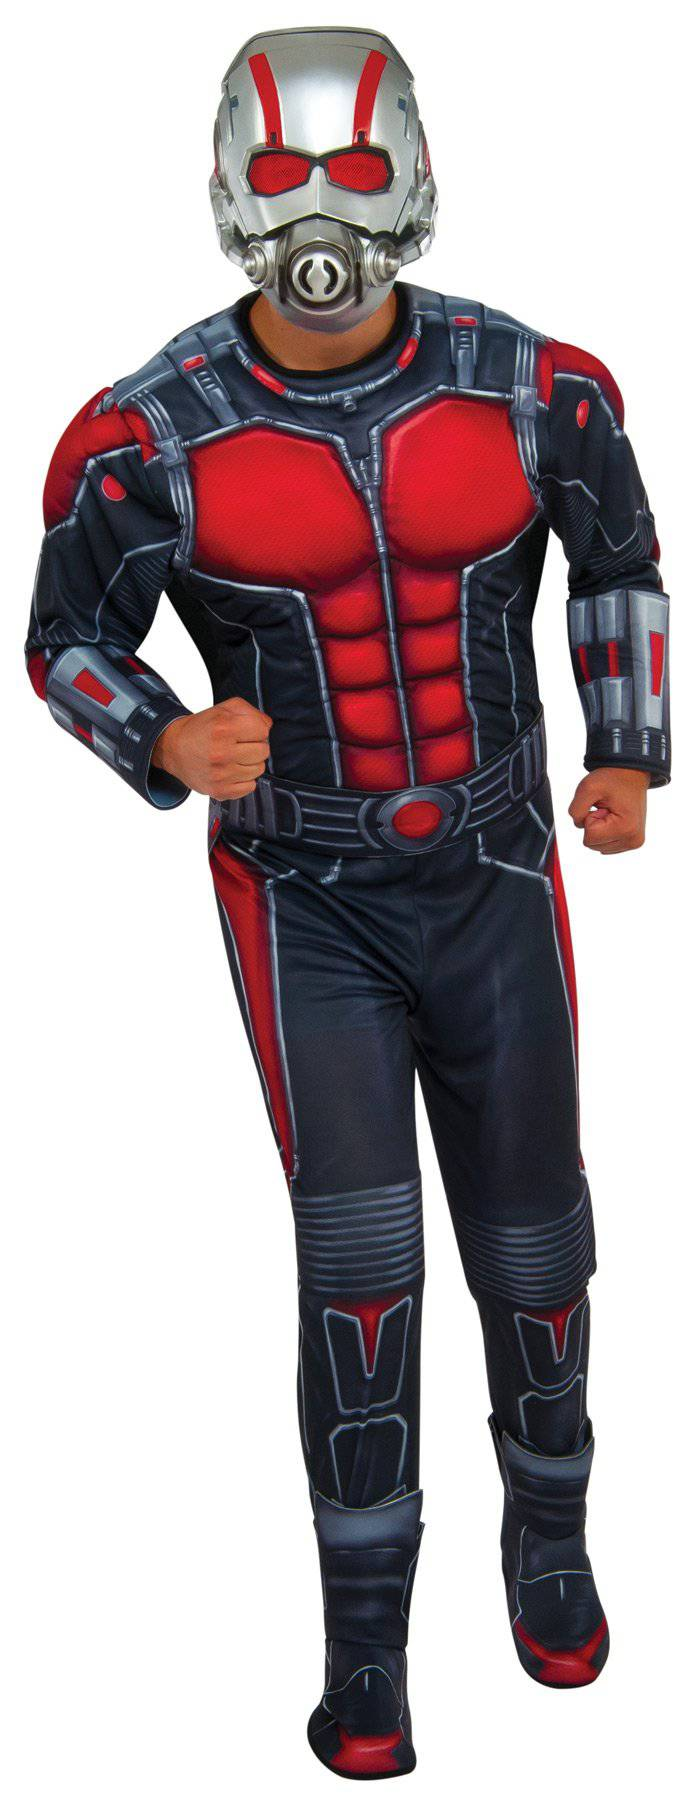 Rubie's Men's Deluxe Muscle Ant-Man Theme Costume - Costume Arena